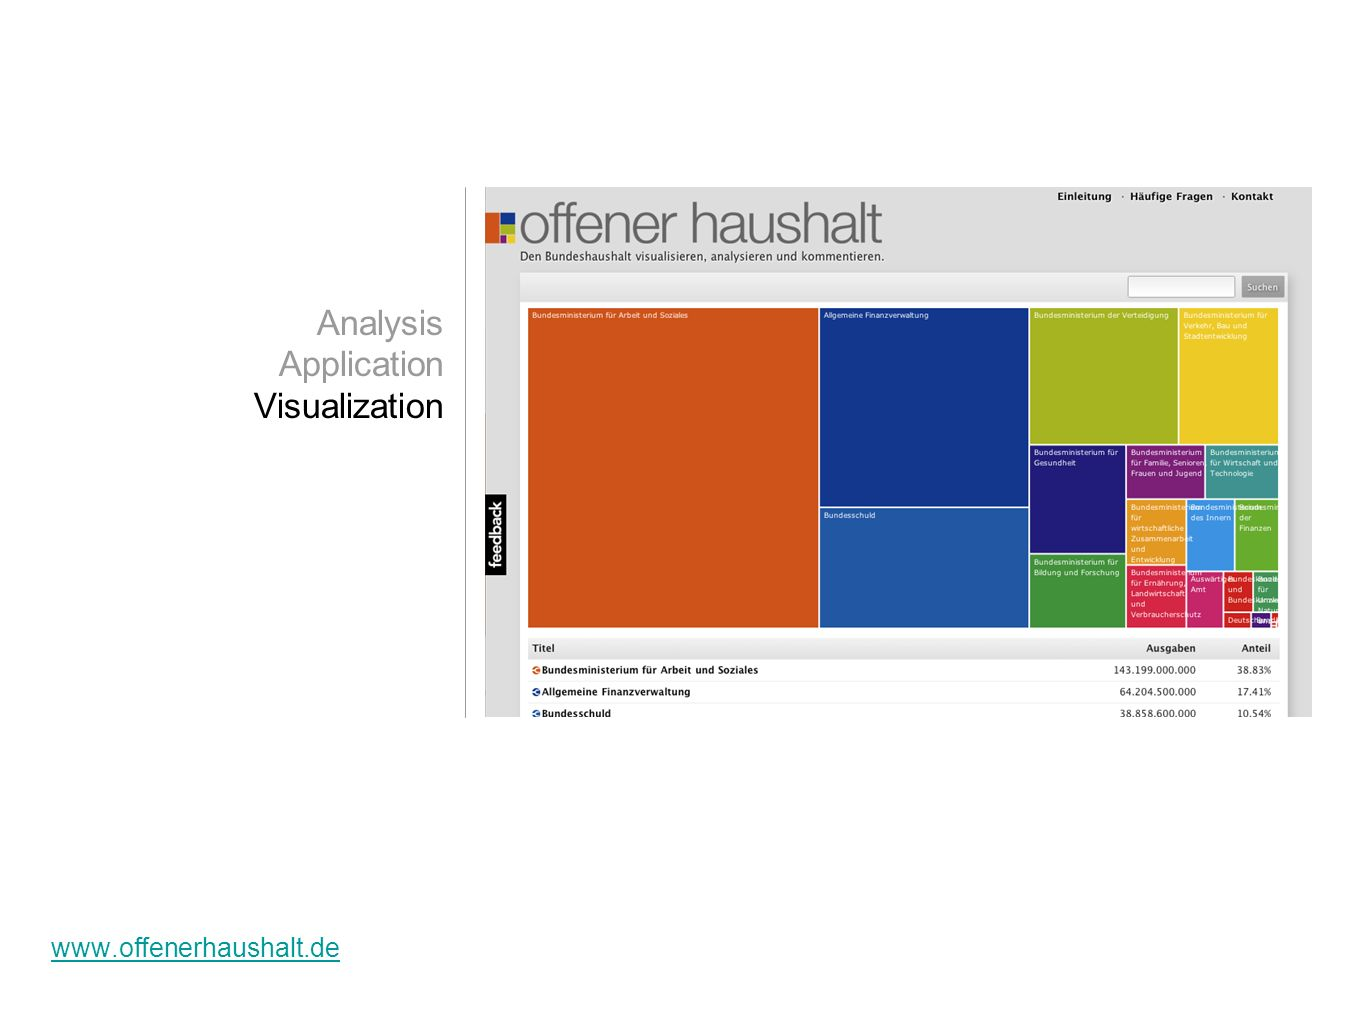 www.offenerhaushalt.de Analysis Application Visualization